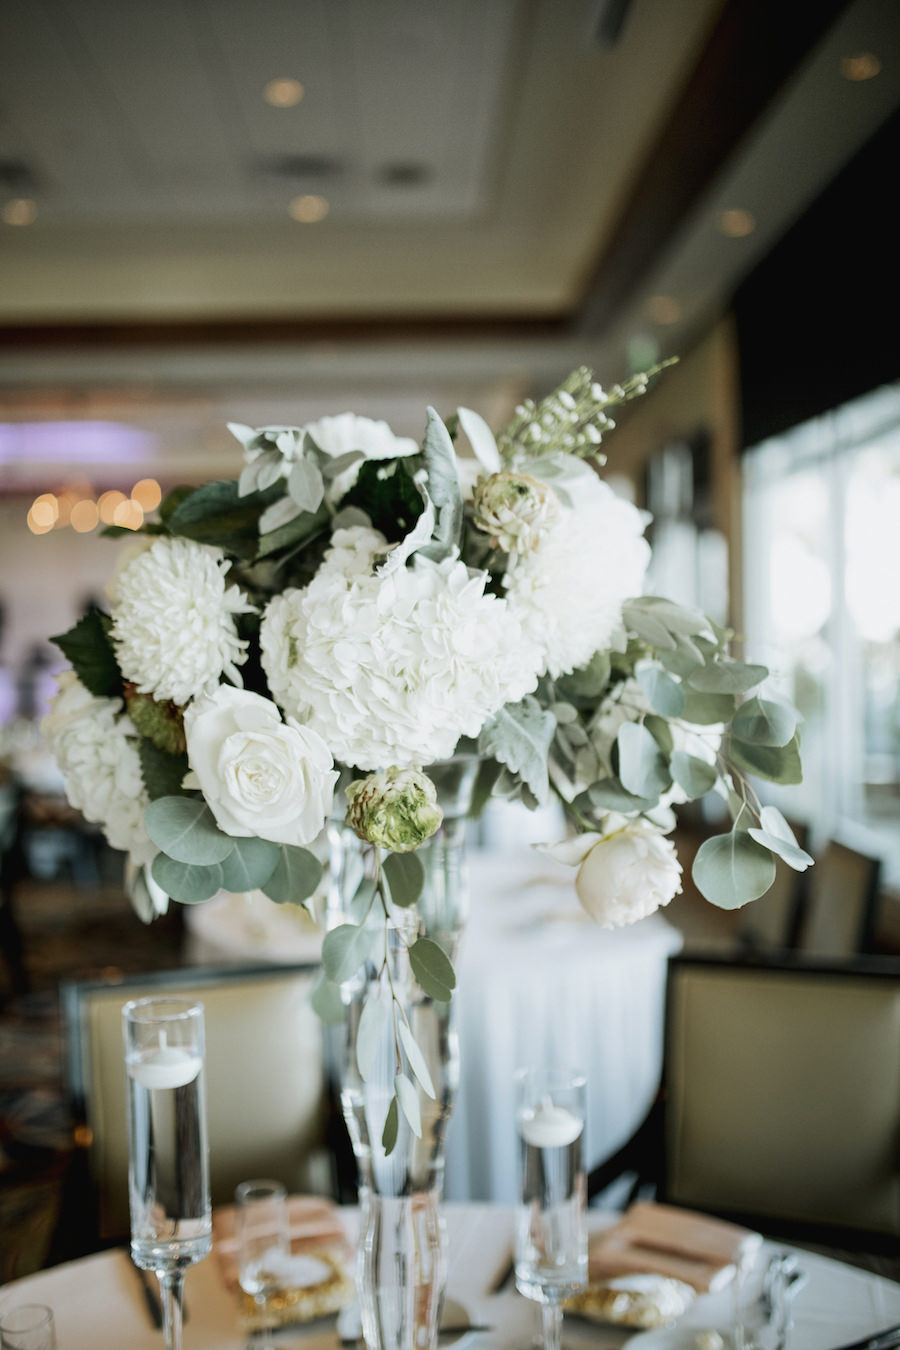 Wedding Reception Centerpieces with Tall Glass Vase with White Flowers and Greenery and Short Glass Vases with White Floating Candles   Wedding Venue Sarasota Yacht Club   Tampa Bay Wedding Planner NK Productions